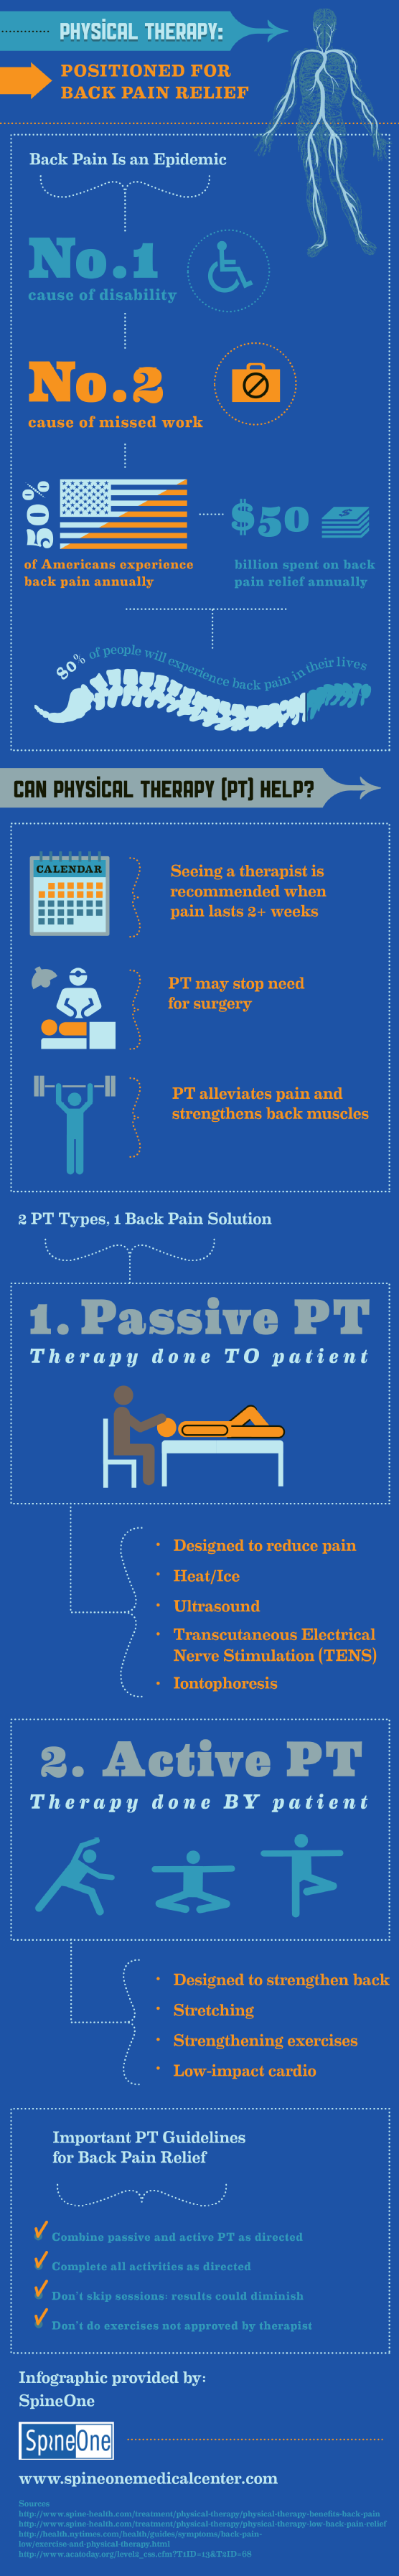 19. Physical Therapy Positioned for Back Pain Relief